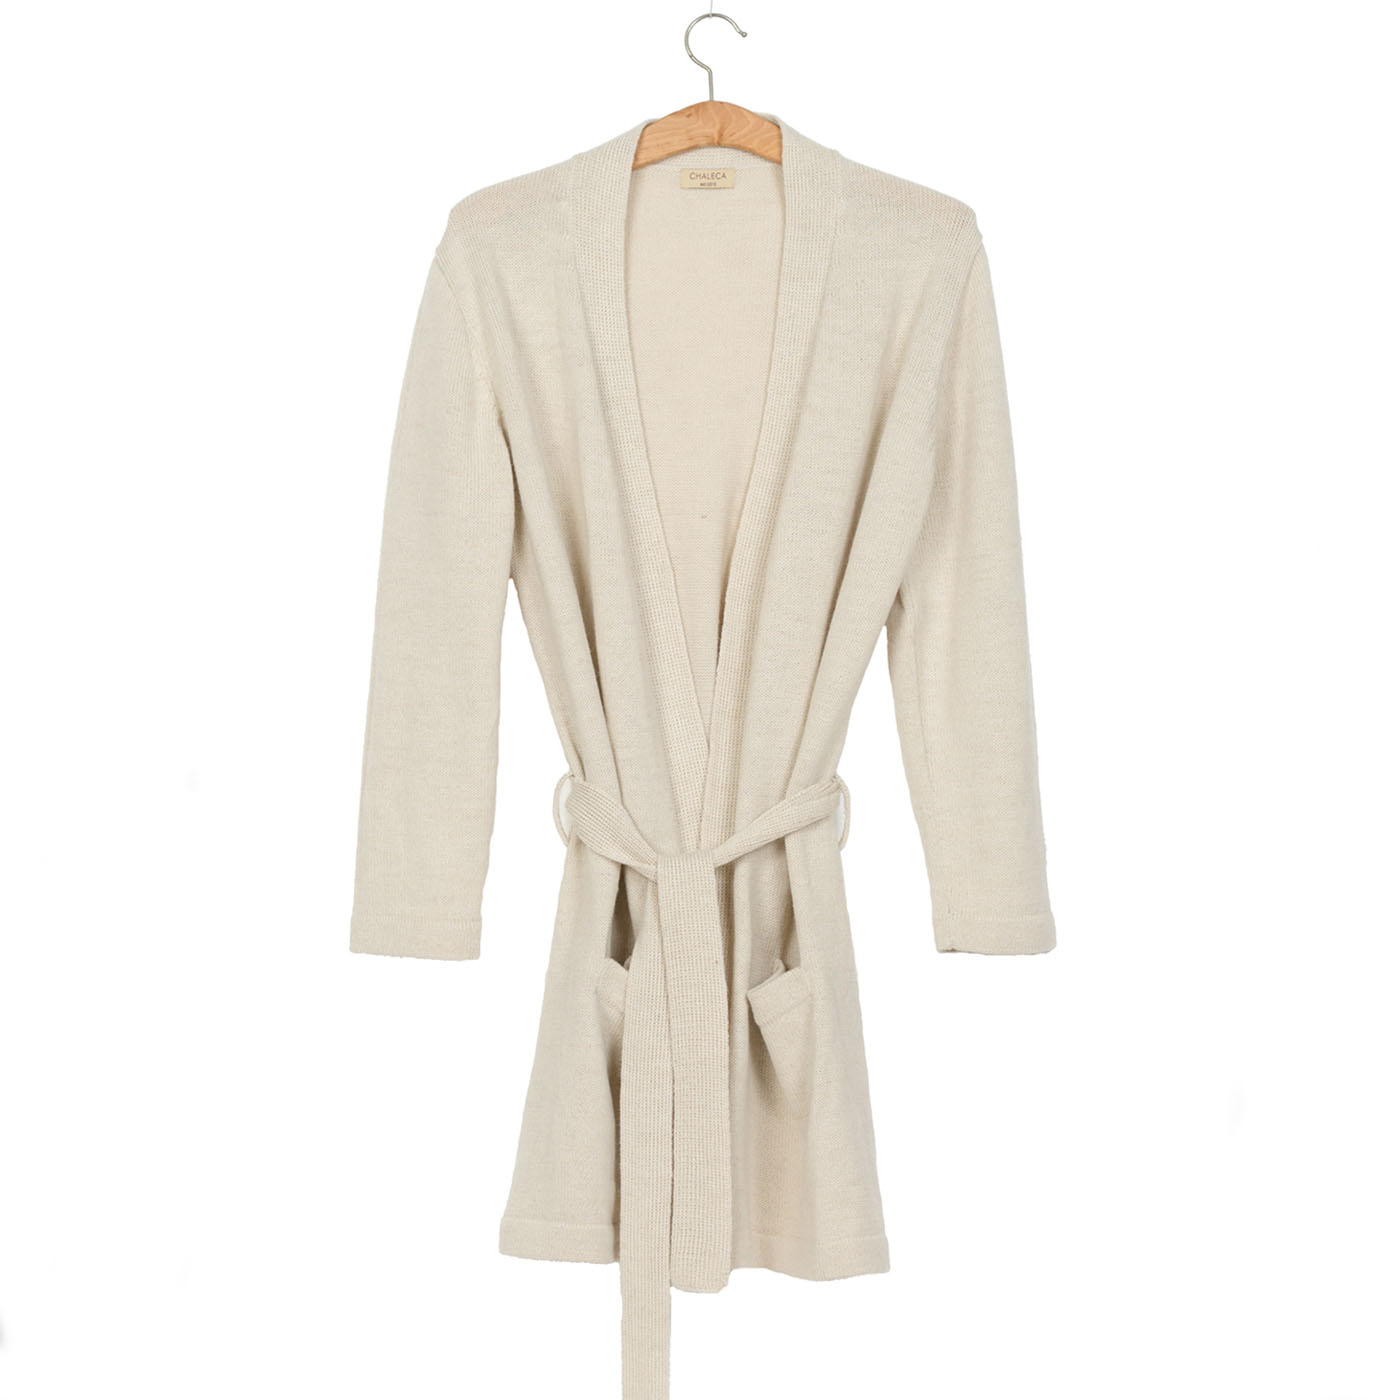 Marinero Simple – Wrap Cardigan. Made to Order Only « chaleca.com